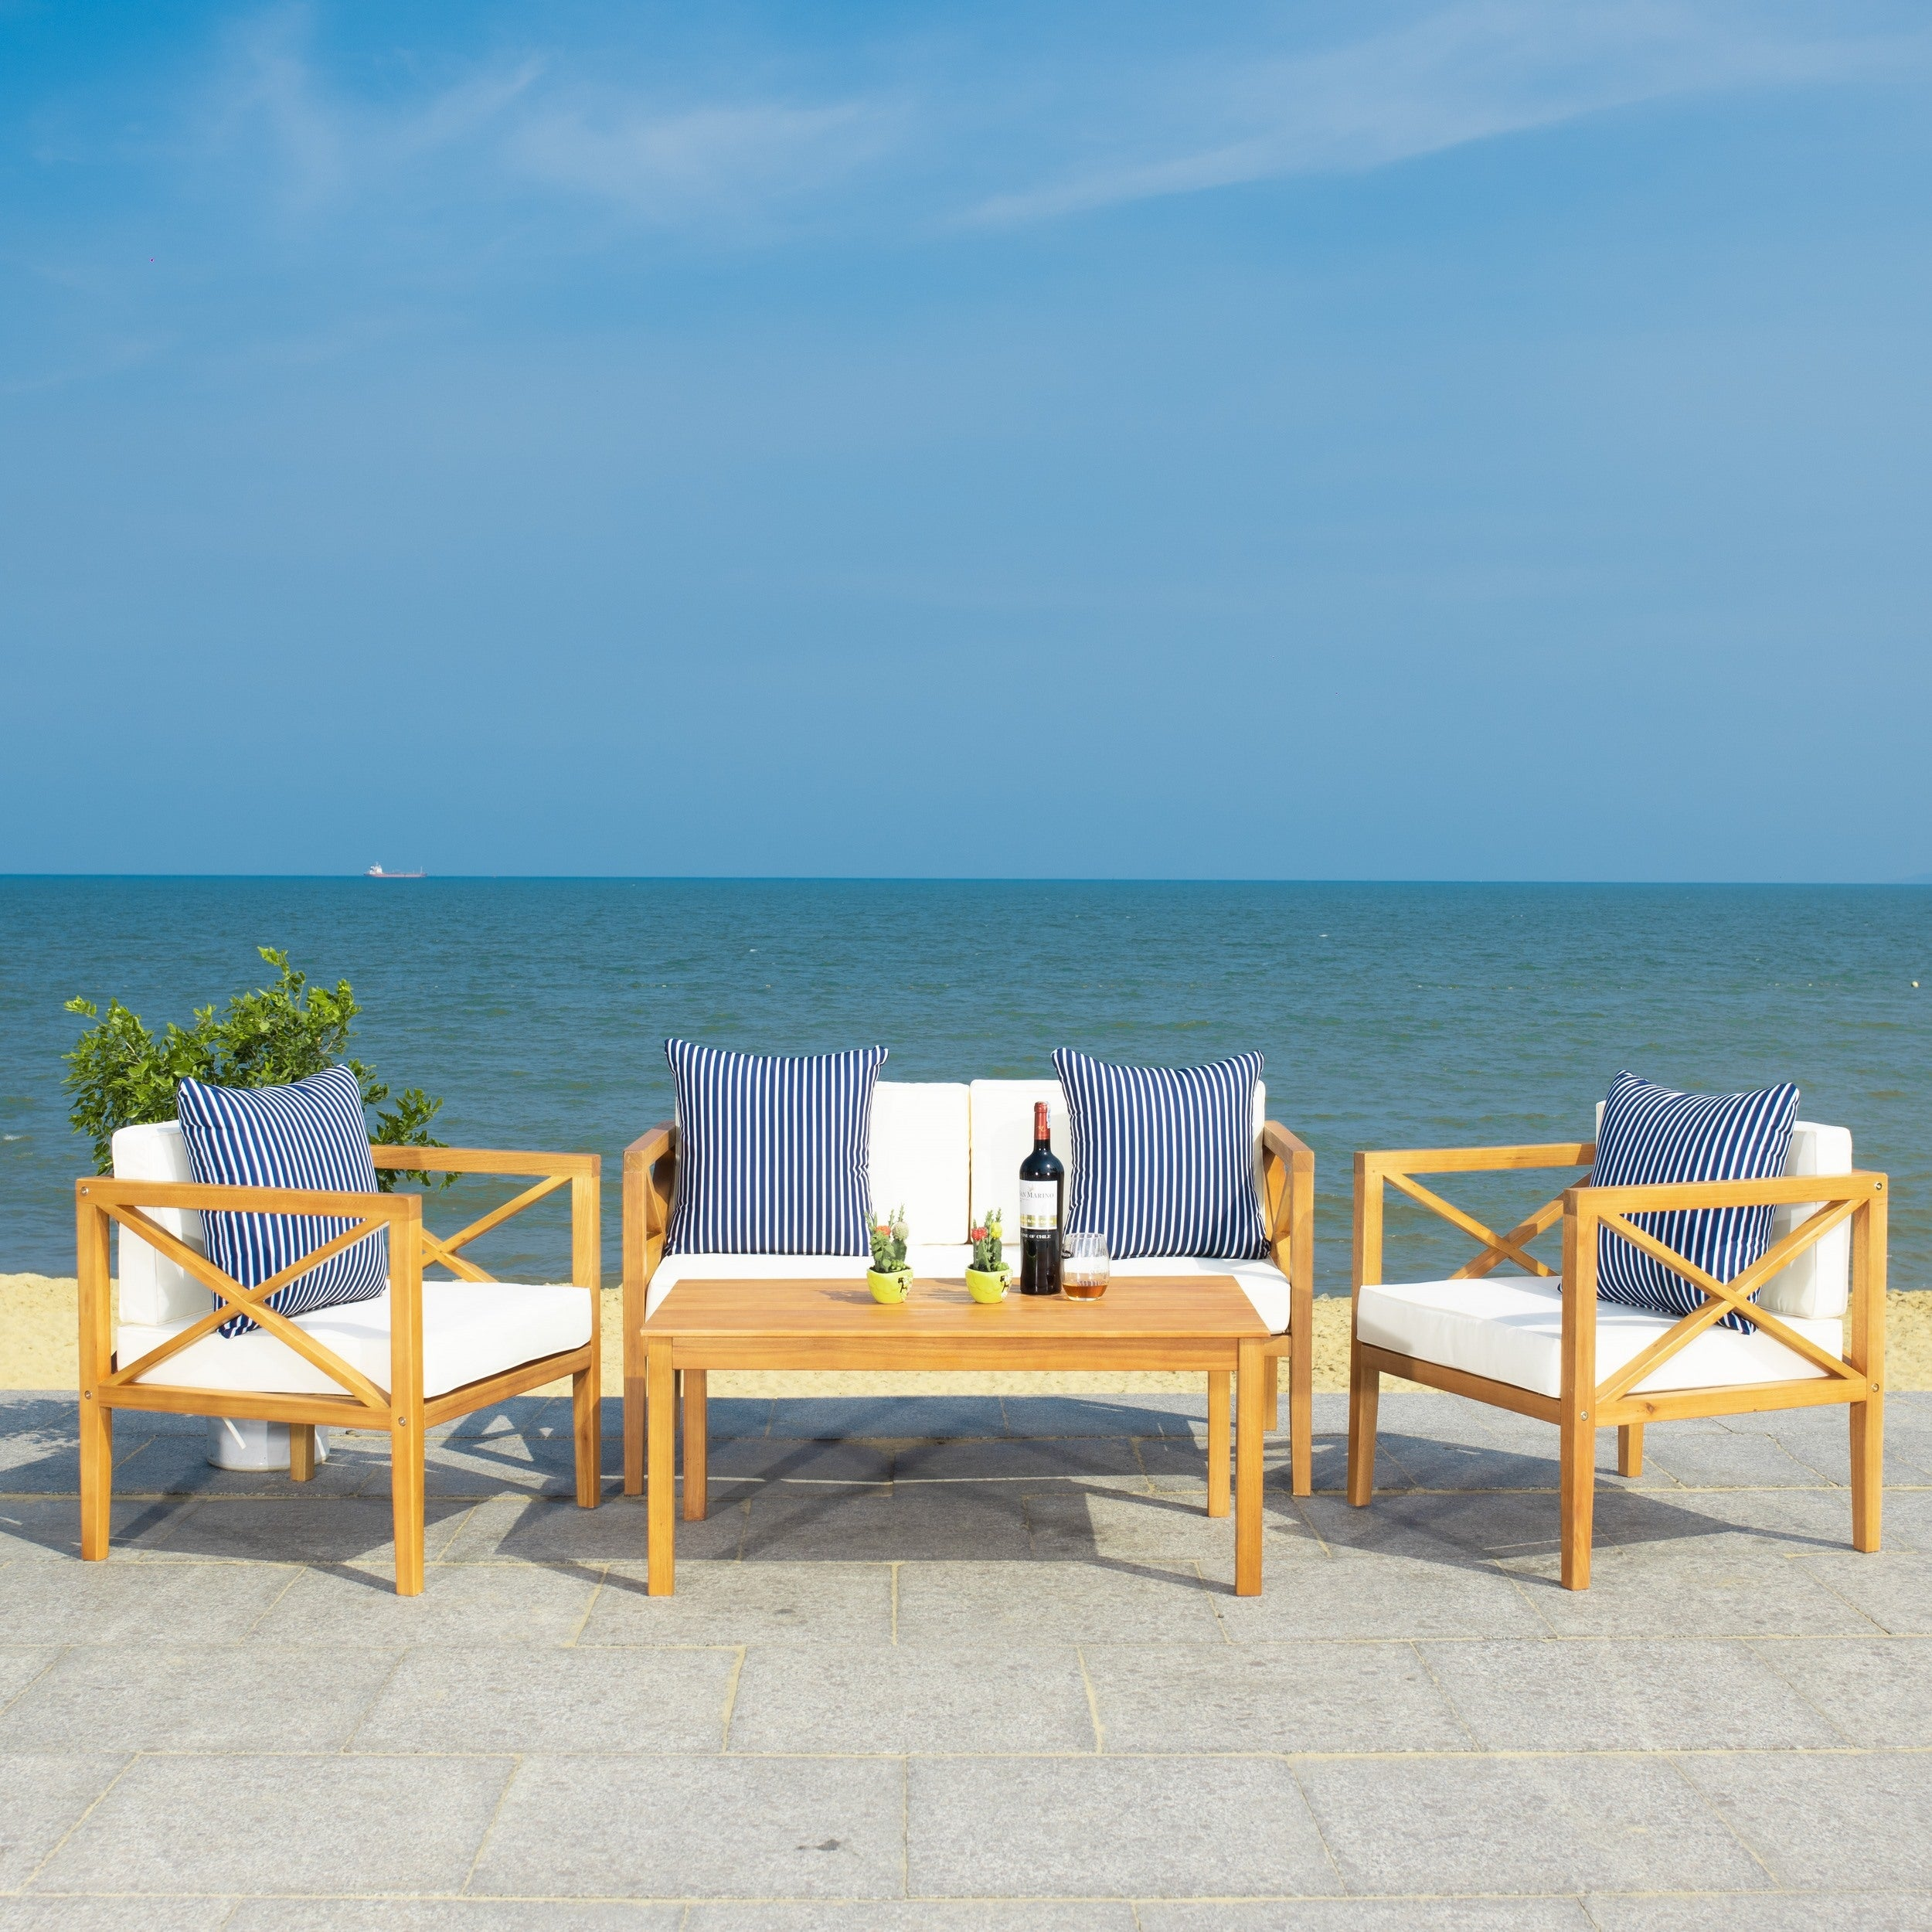 Safavieh Outdoor Living Montez 4 Piece Set with Accent | eBay on Safavieh Outdoor Living Montez 4 Piece Set id=34590